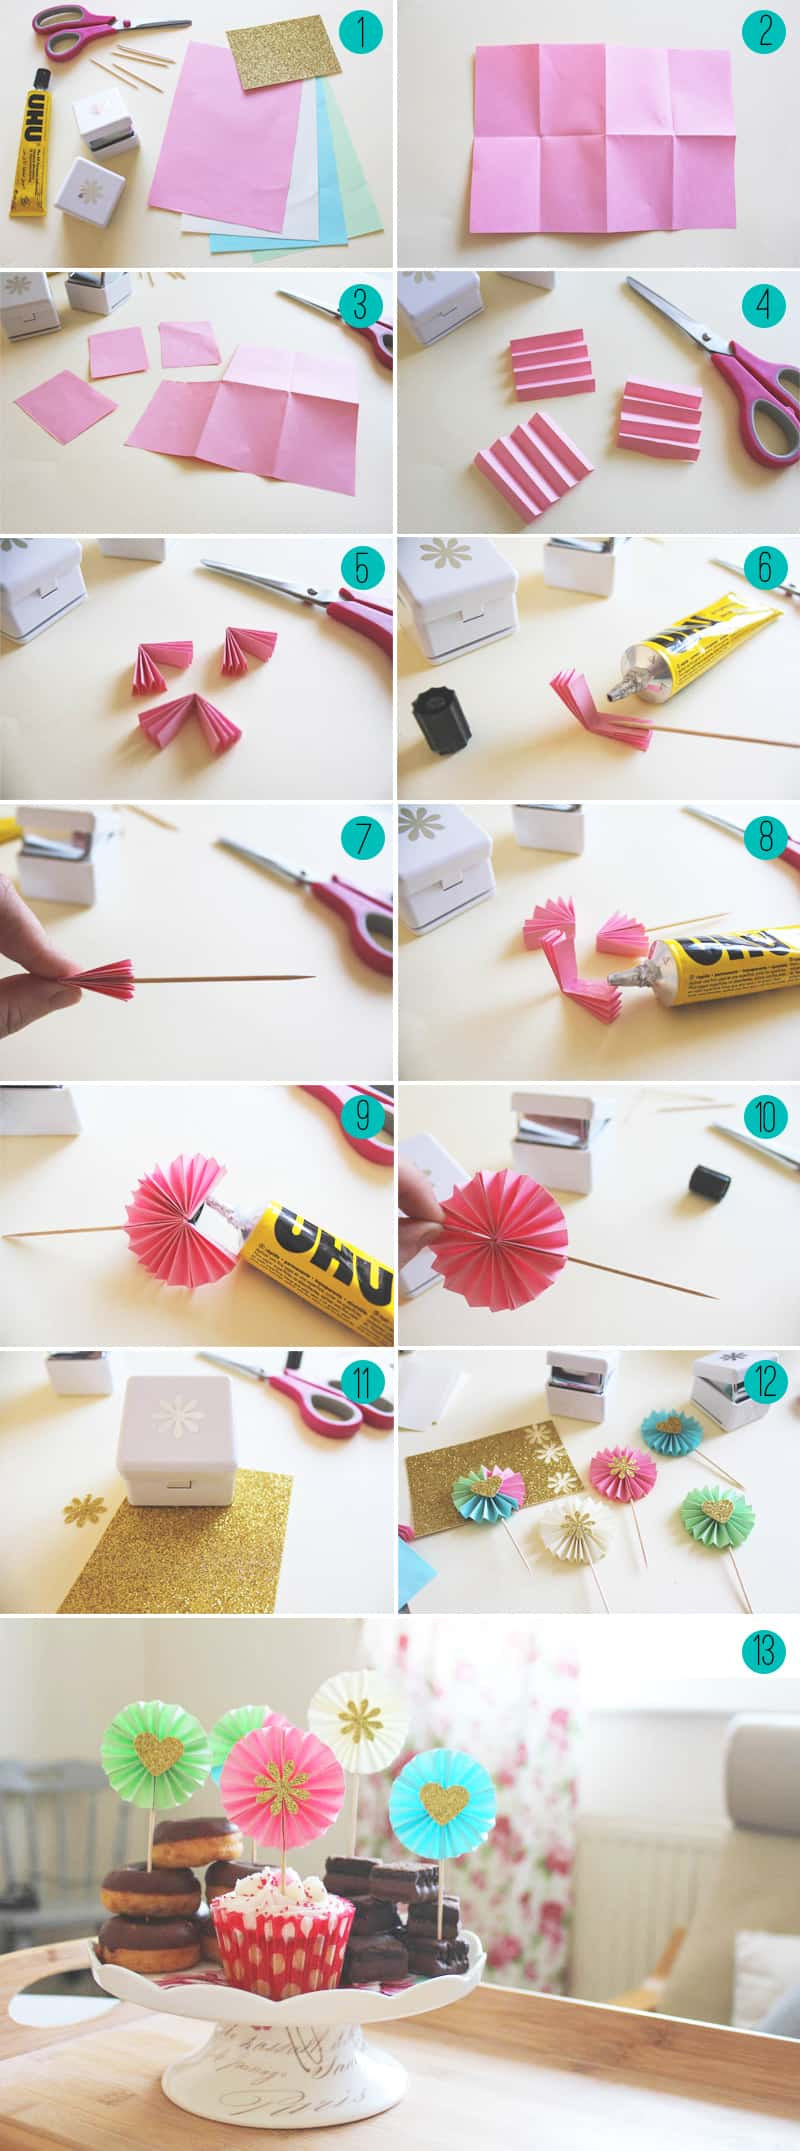 Cupcake Decorating Ideas Step By Step : DIY Paper Fan Decorations Cupcake Toppers Bespoke-Bride ...